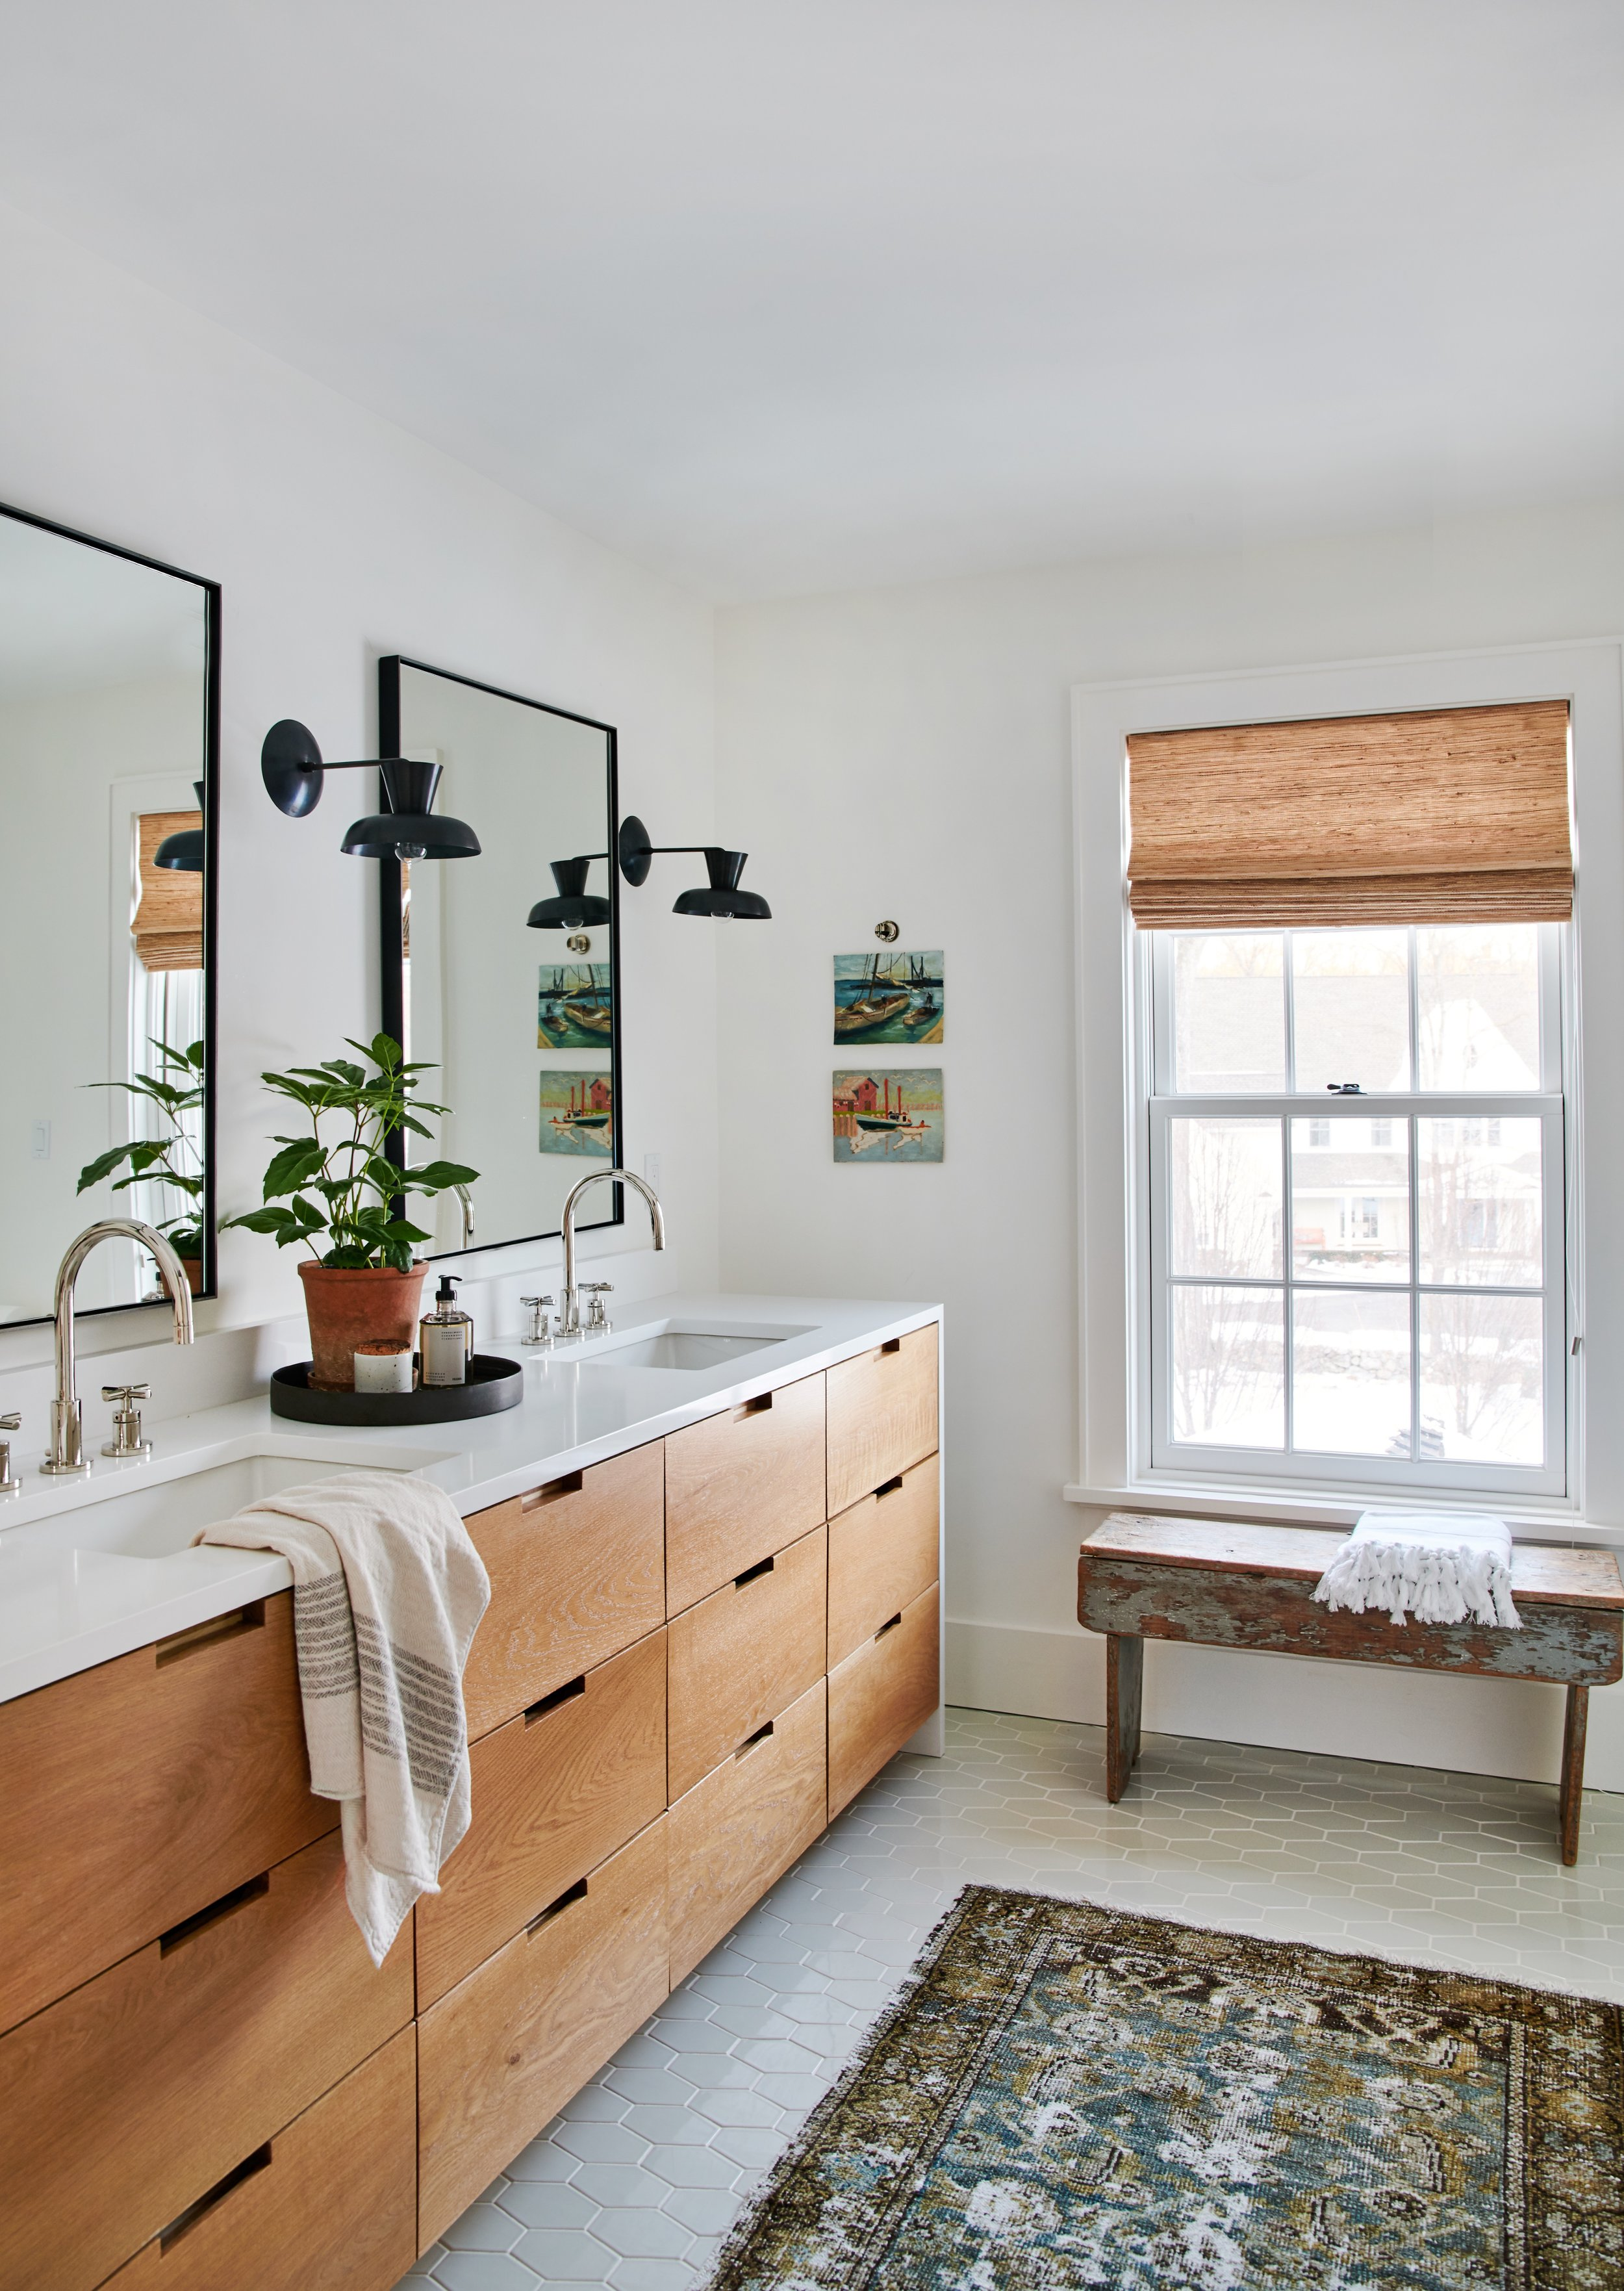 Flooring - Selecting your bathroom flooring is one of the key ingredients to a well planned remodel.Pro tip: When selecting a floor tile or mosaic, consider the slip resistance since each type of surface offers.Photo by Amber Interiors